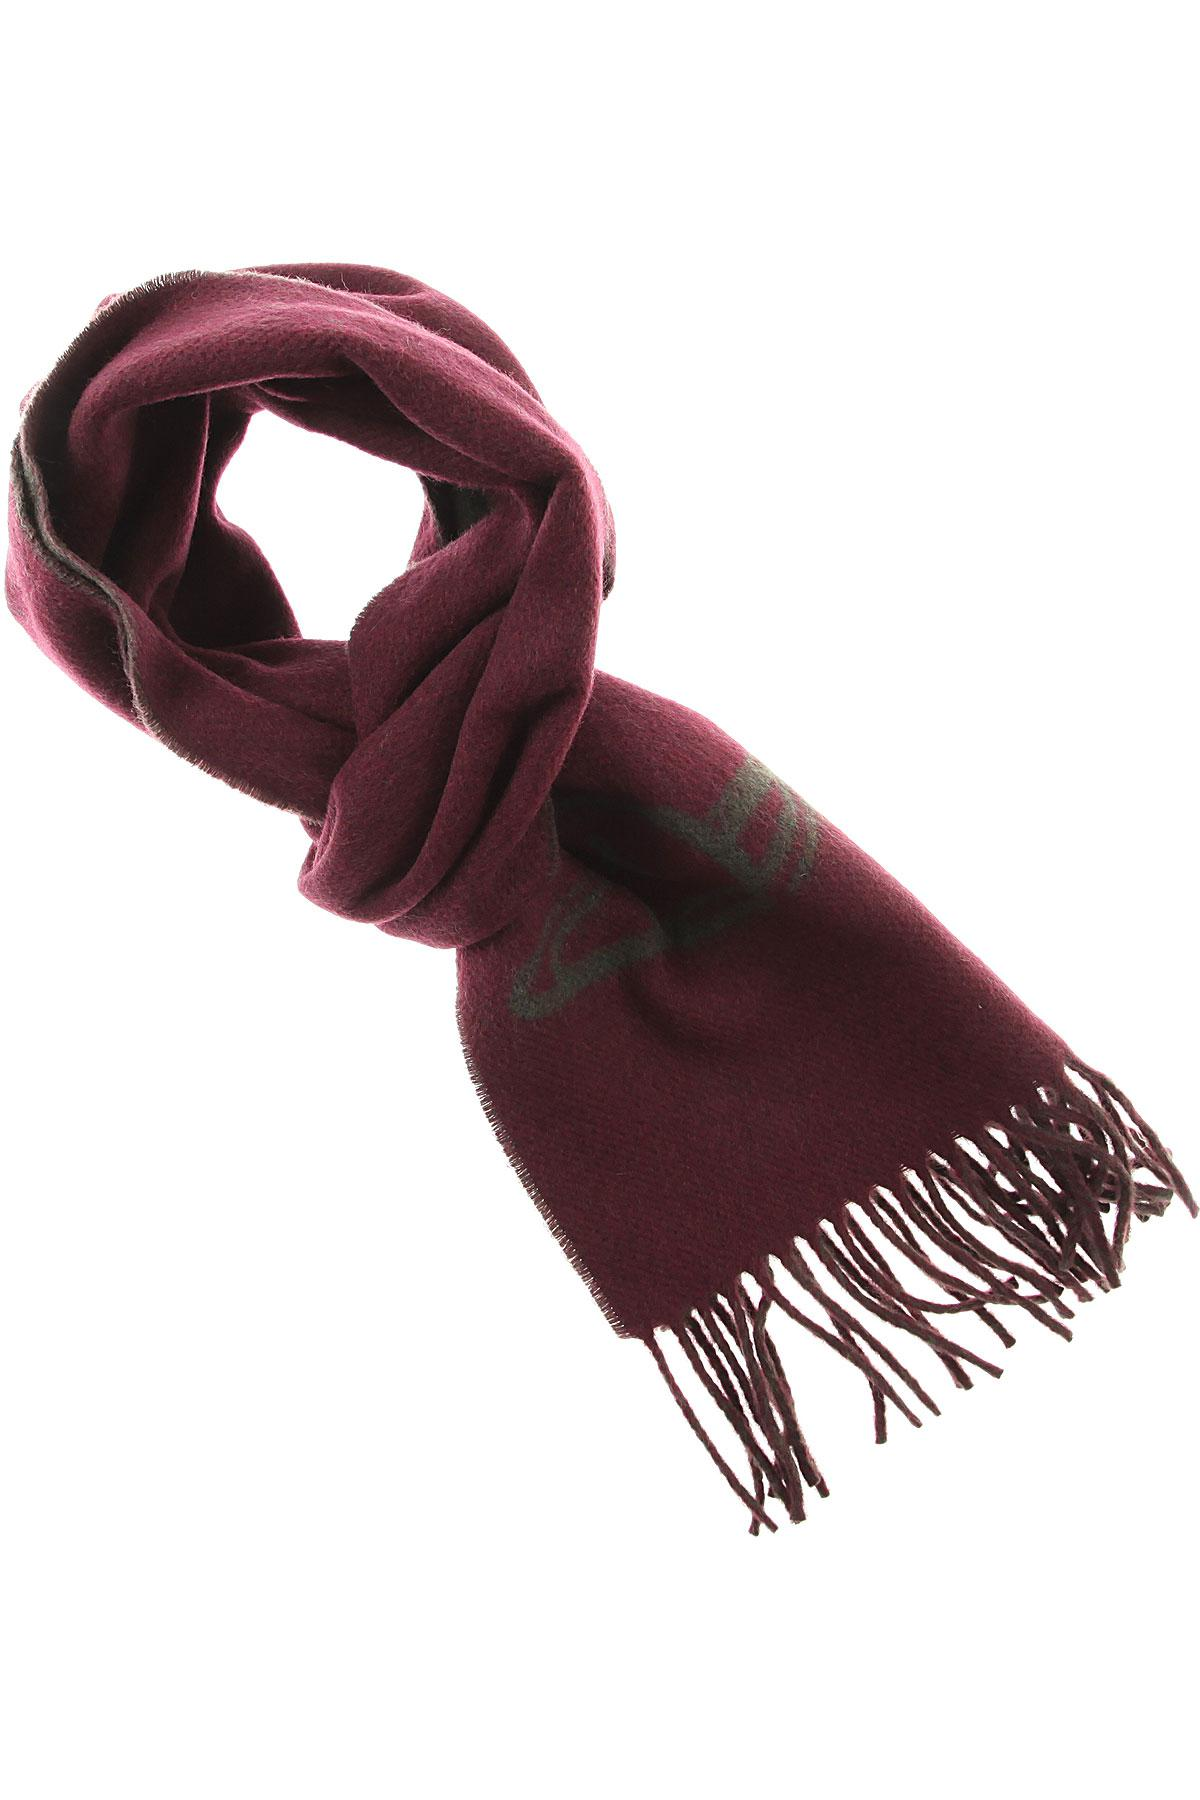 285448591a6 Vivienne Westwood Scarf For Women in Red - Lyst